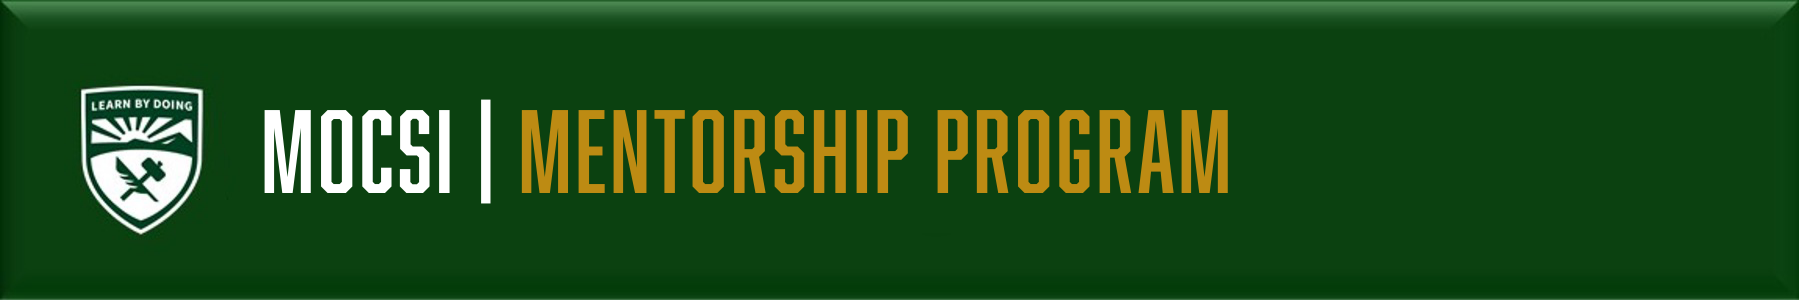 """Green background with Cal Poly crest, text reads """"MOCSI Mentorship Program"""""""